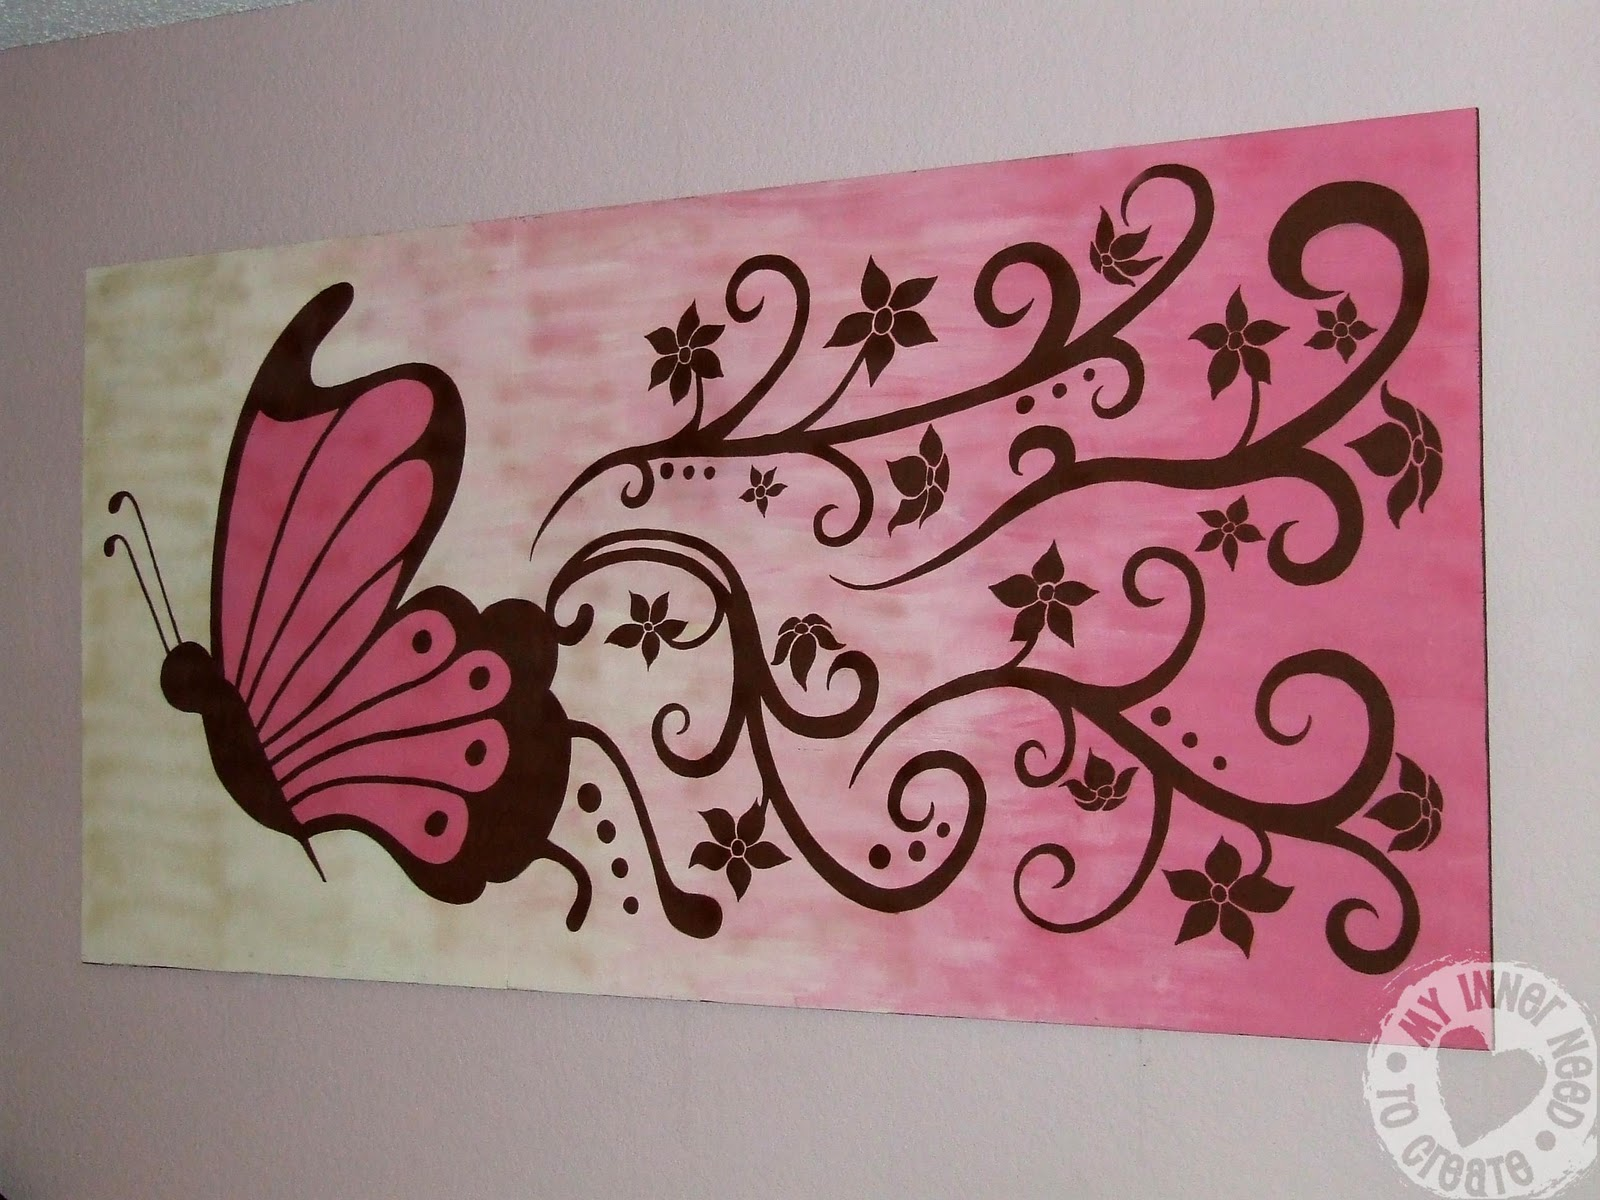 Acrylic Paint For Wall Murals My Inner Need To Create Brown And Pink Butterfly And